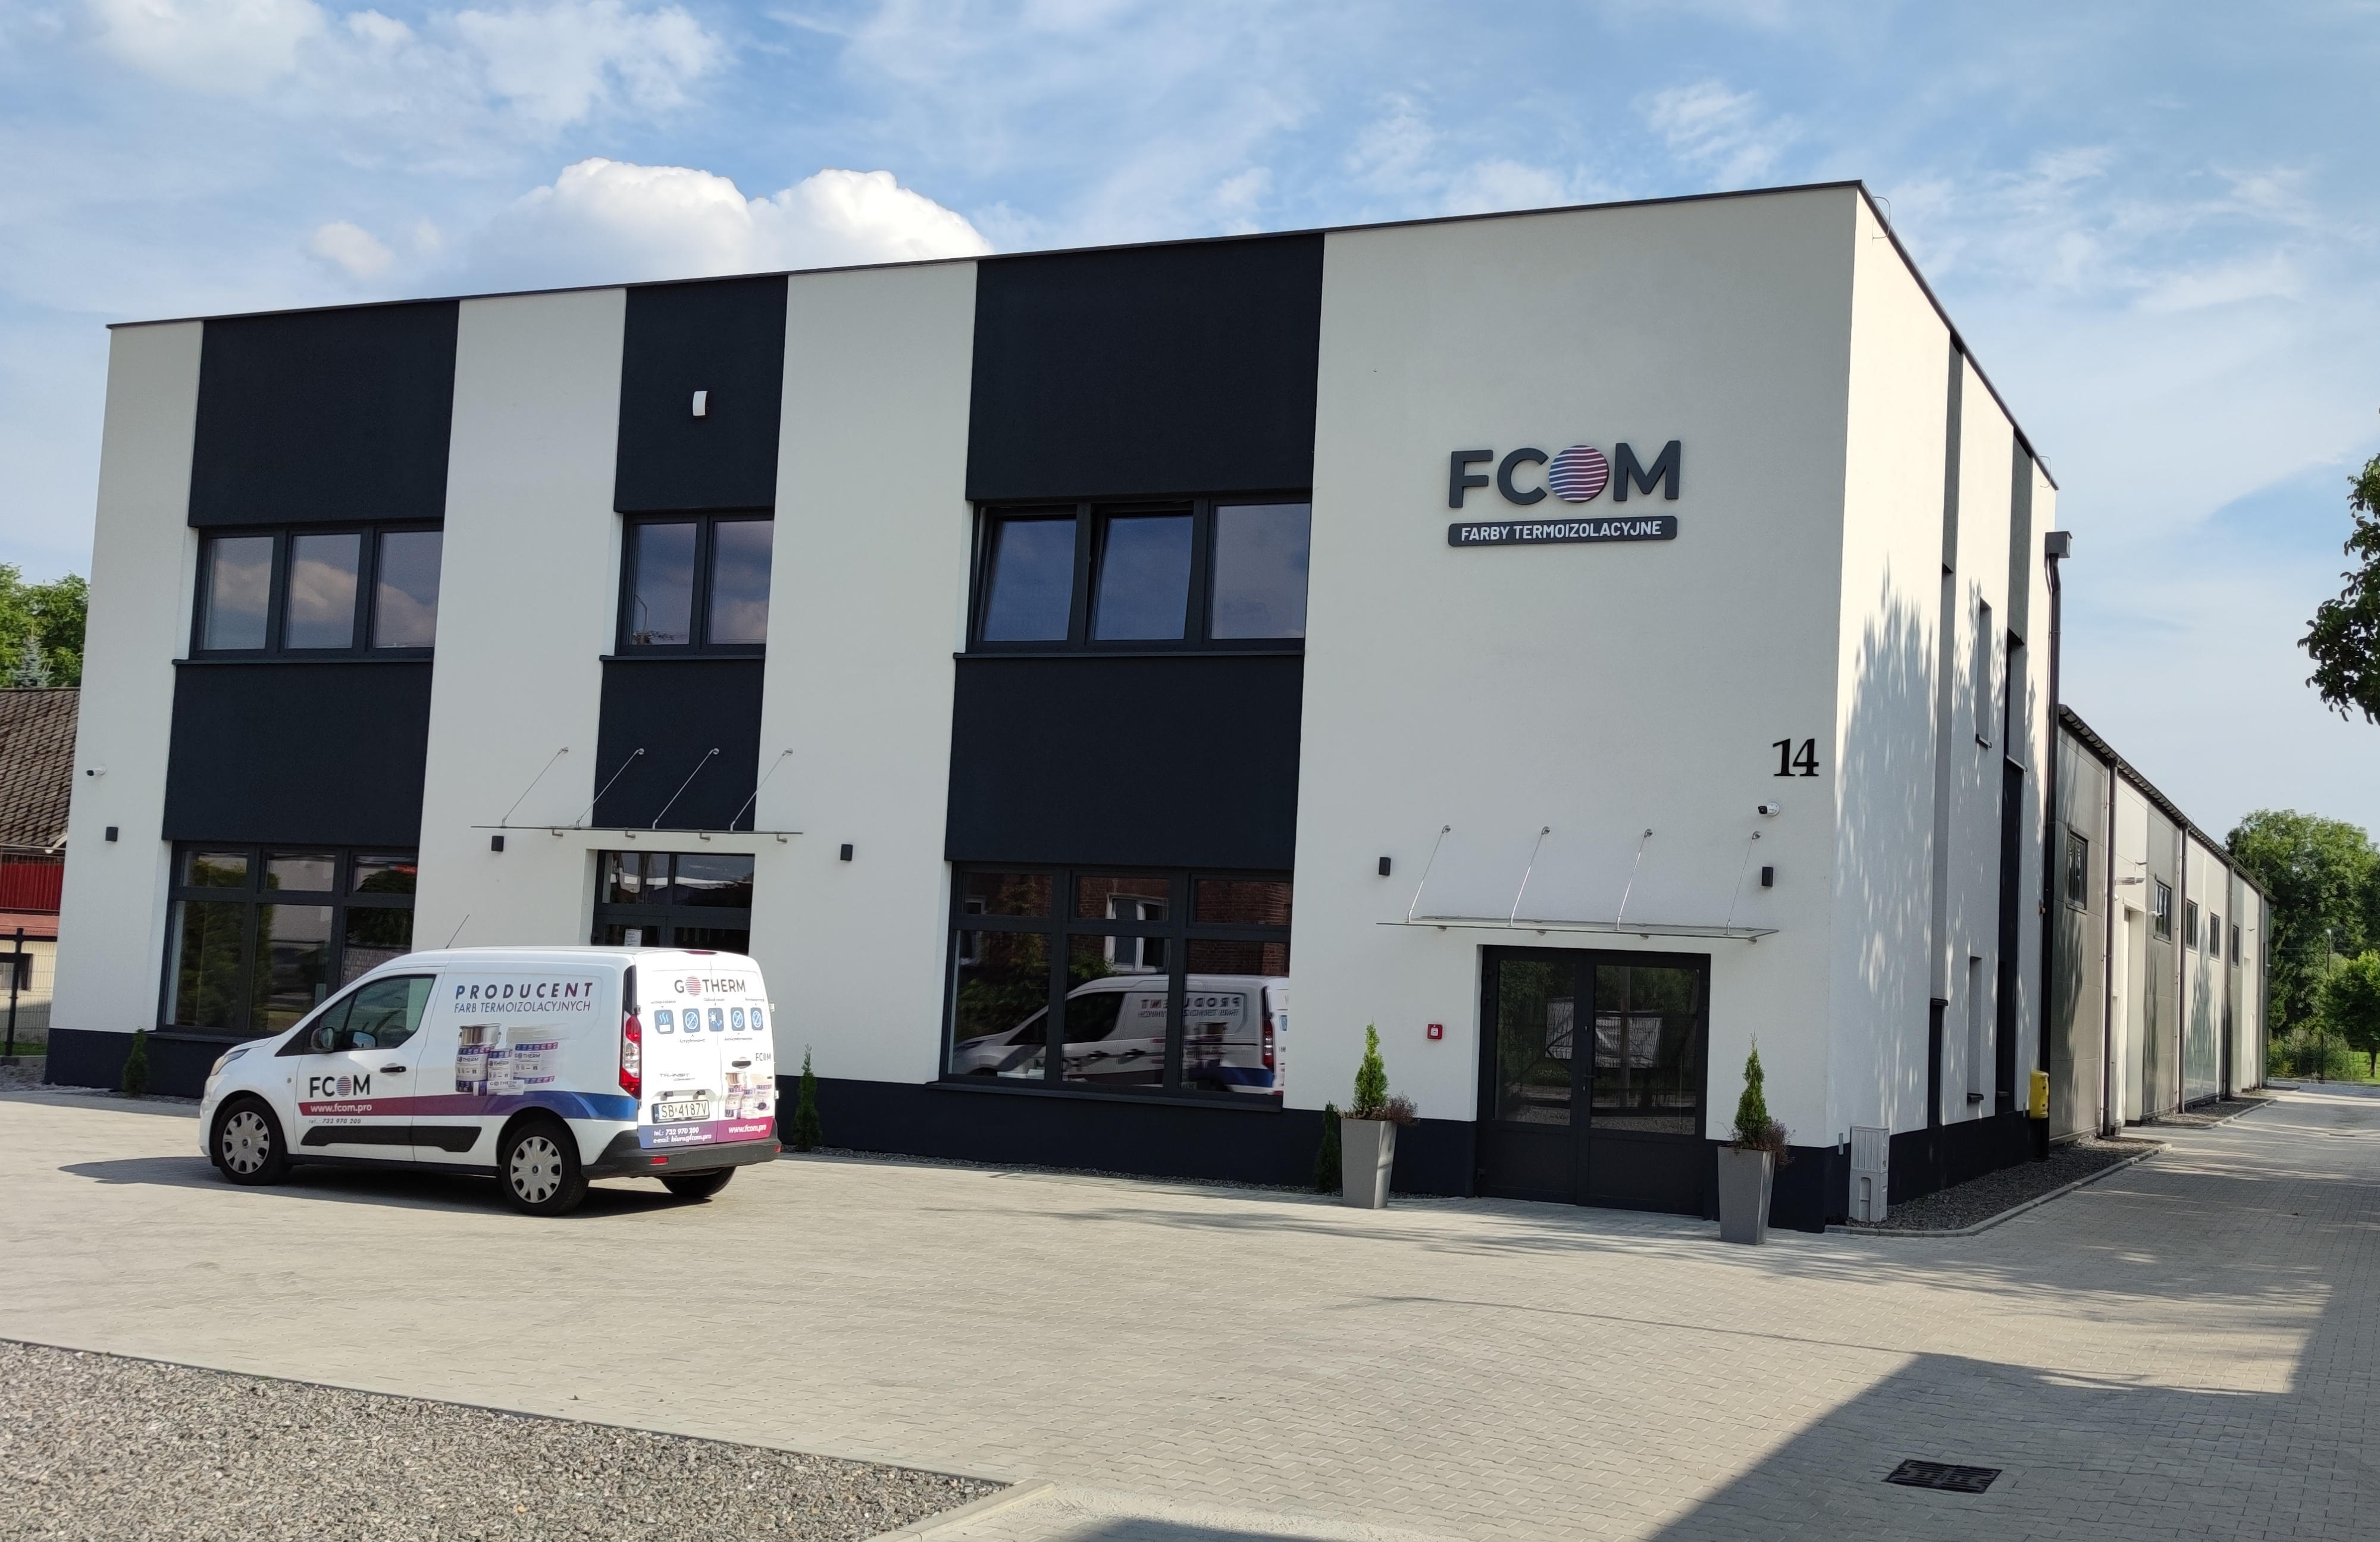 headquarters of FCOM, the producer of GoTherm